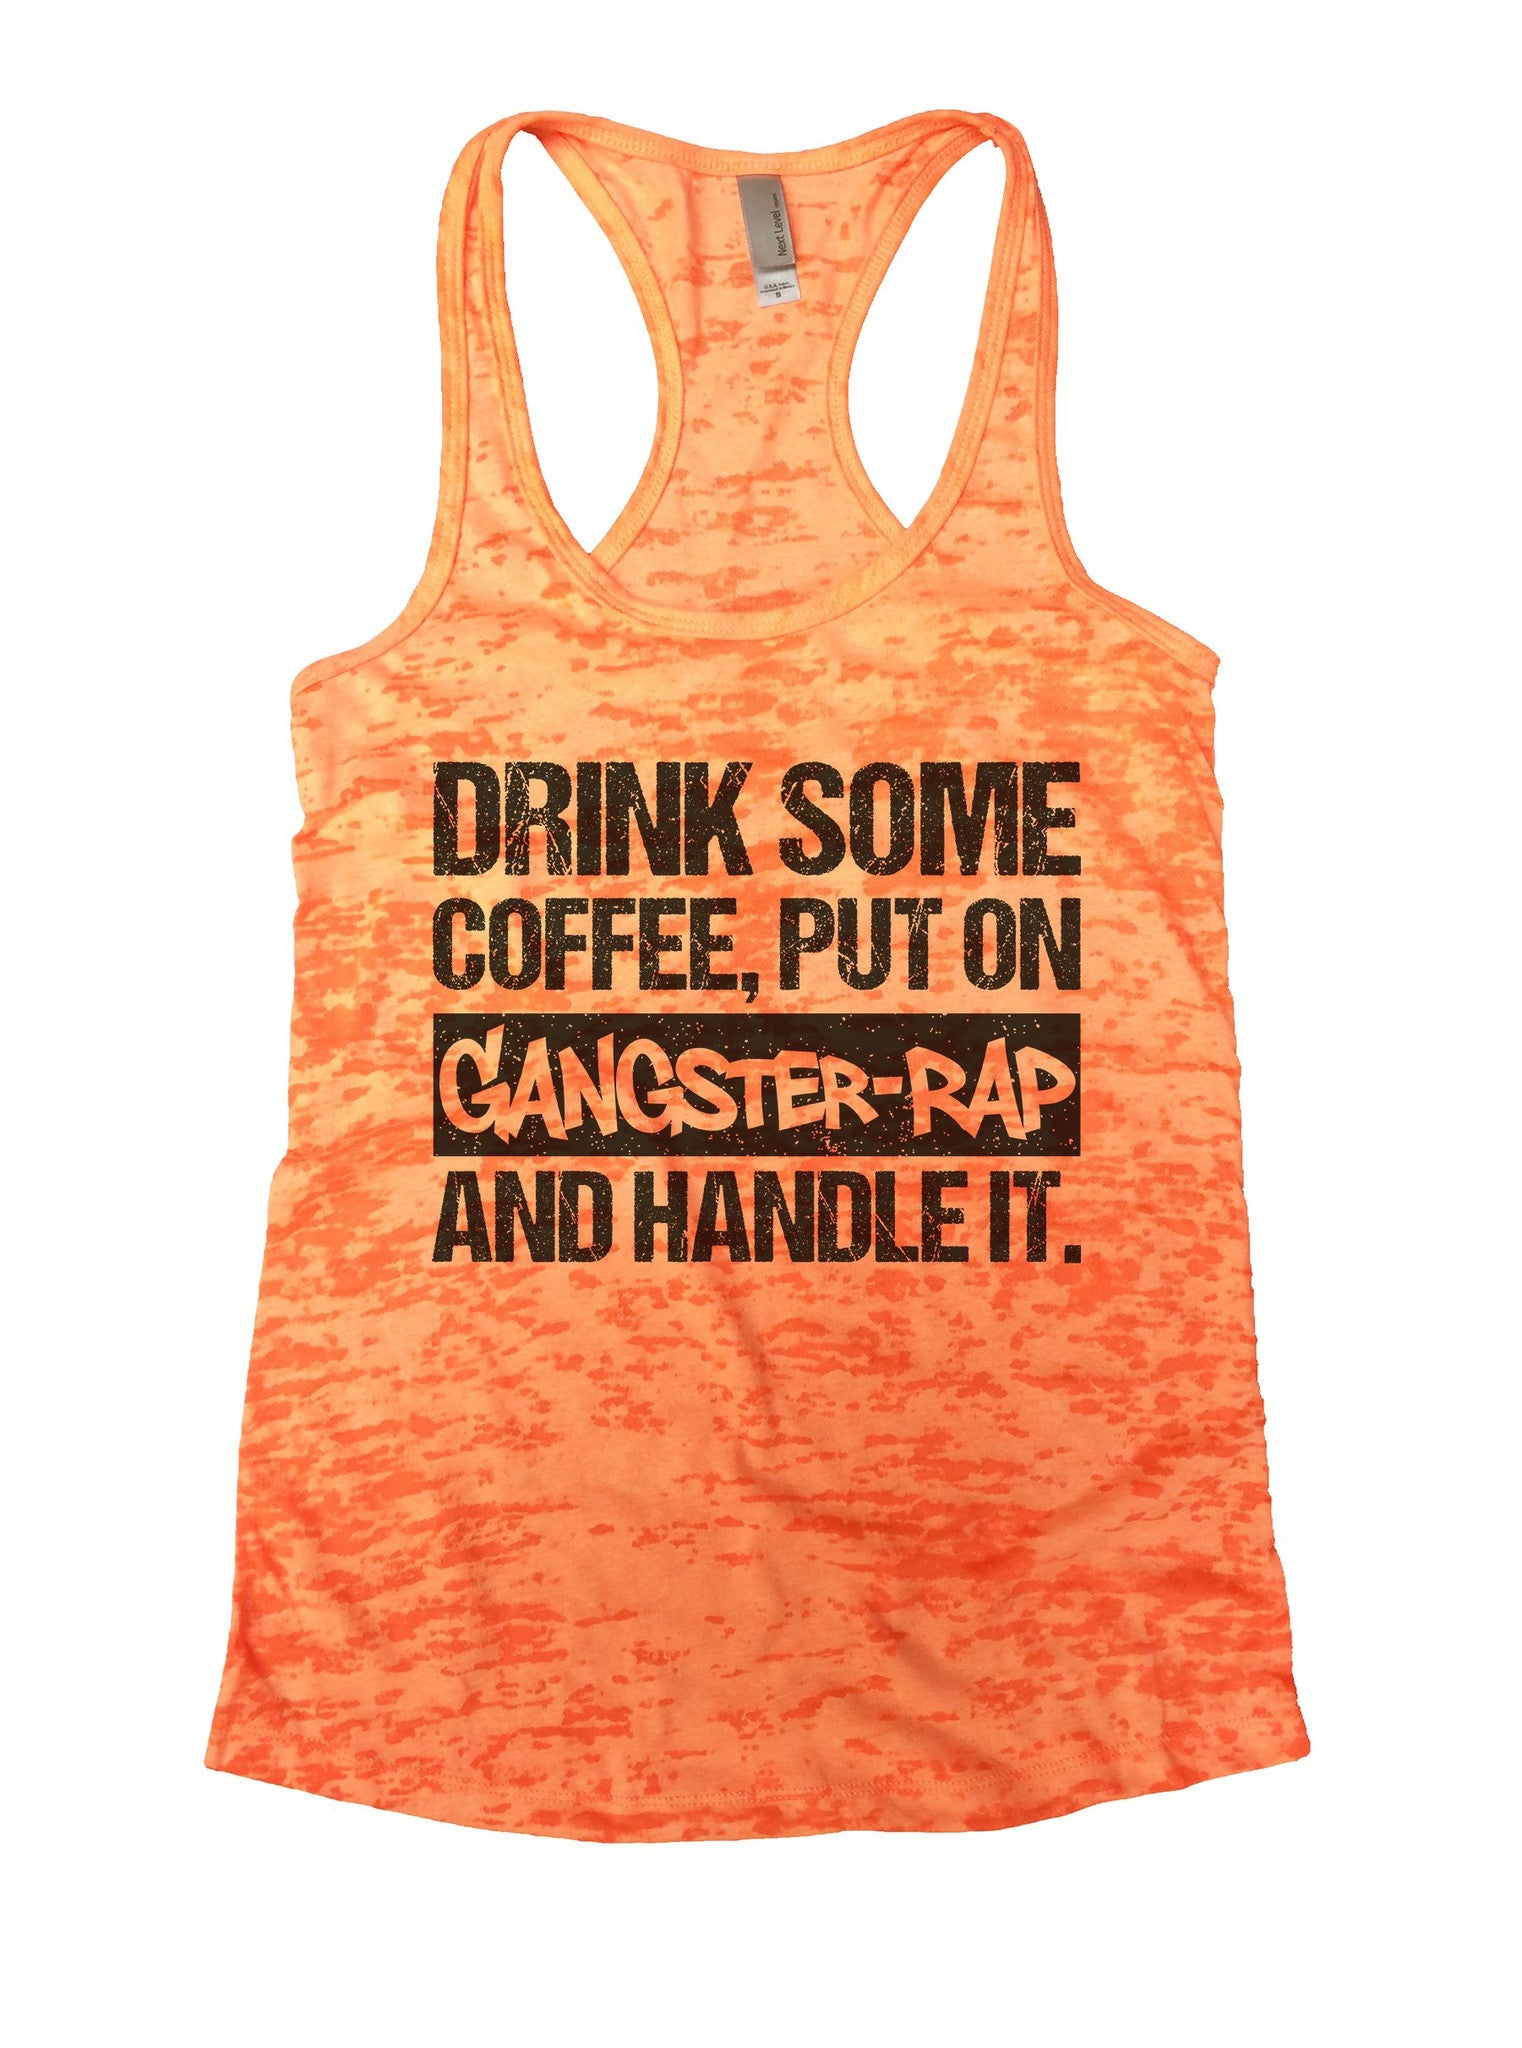 Drink Some Coffee, Put On Gangster-Rap And Handle It. Burnout Tank Top By BurnoutTankTops.com - 1031 - Funny Shirts Tank Tops Burnouts and Triblends  - 3